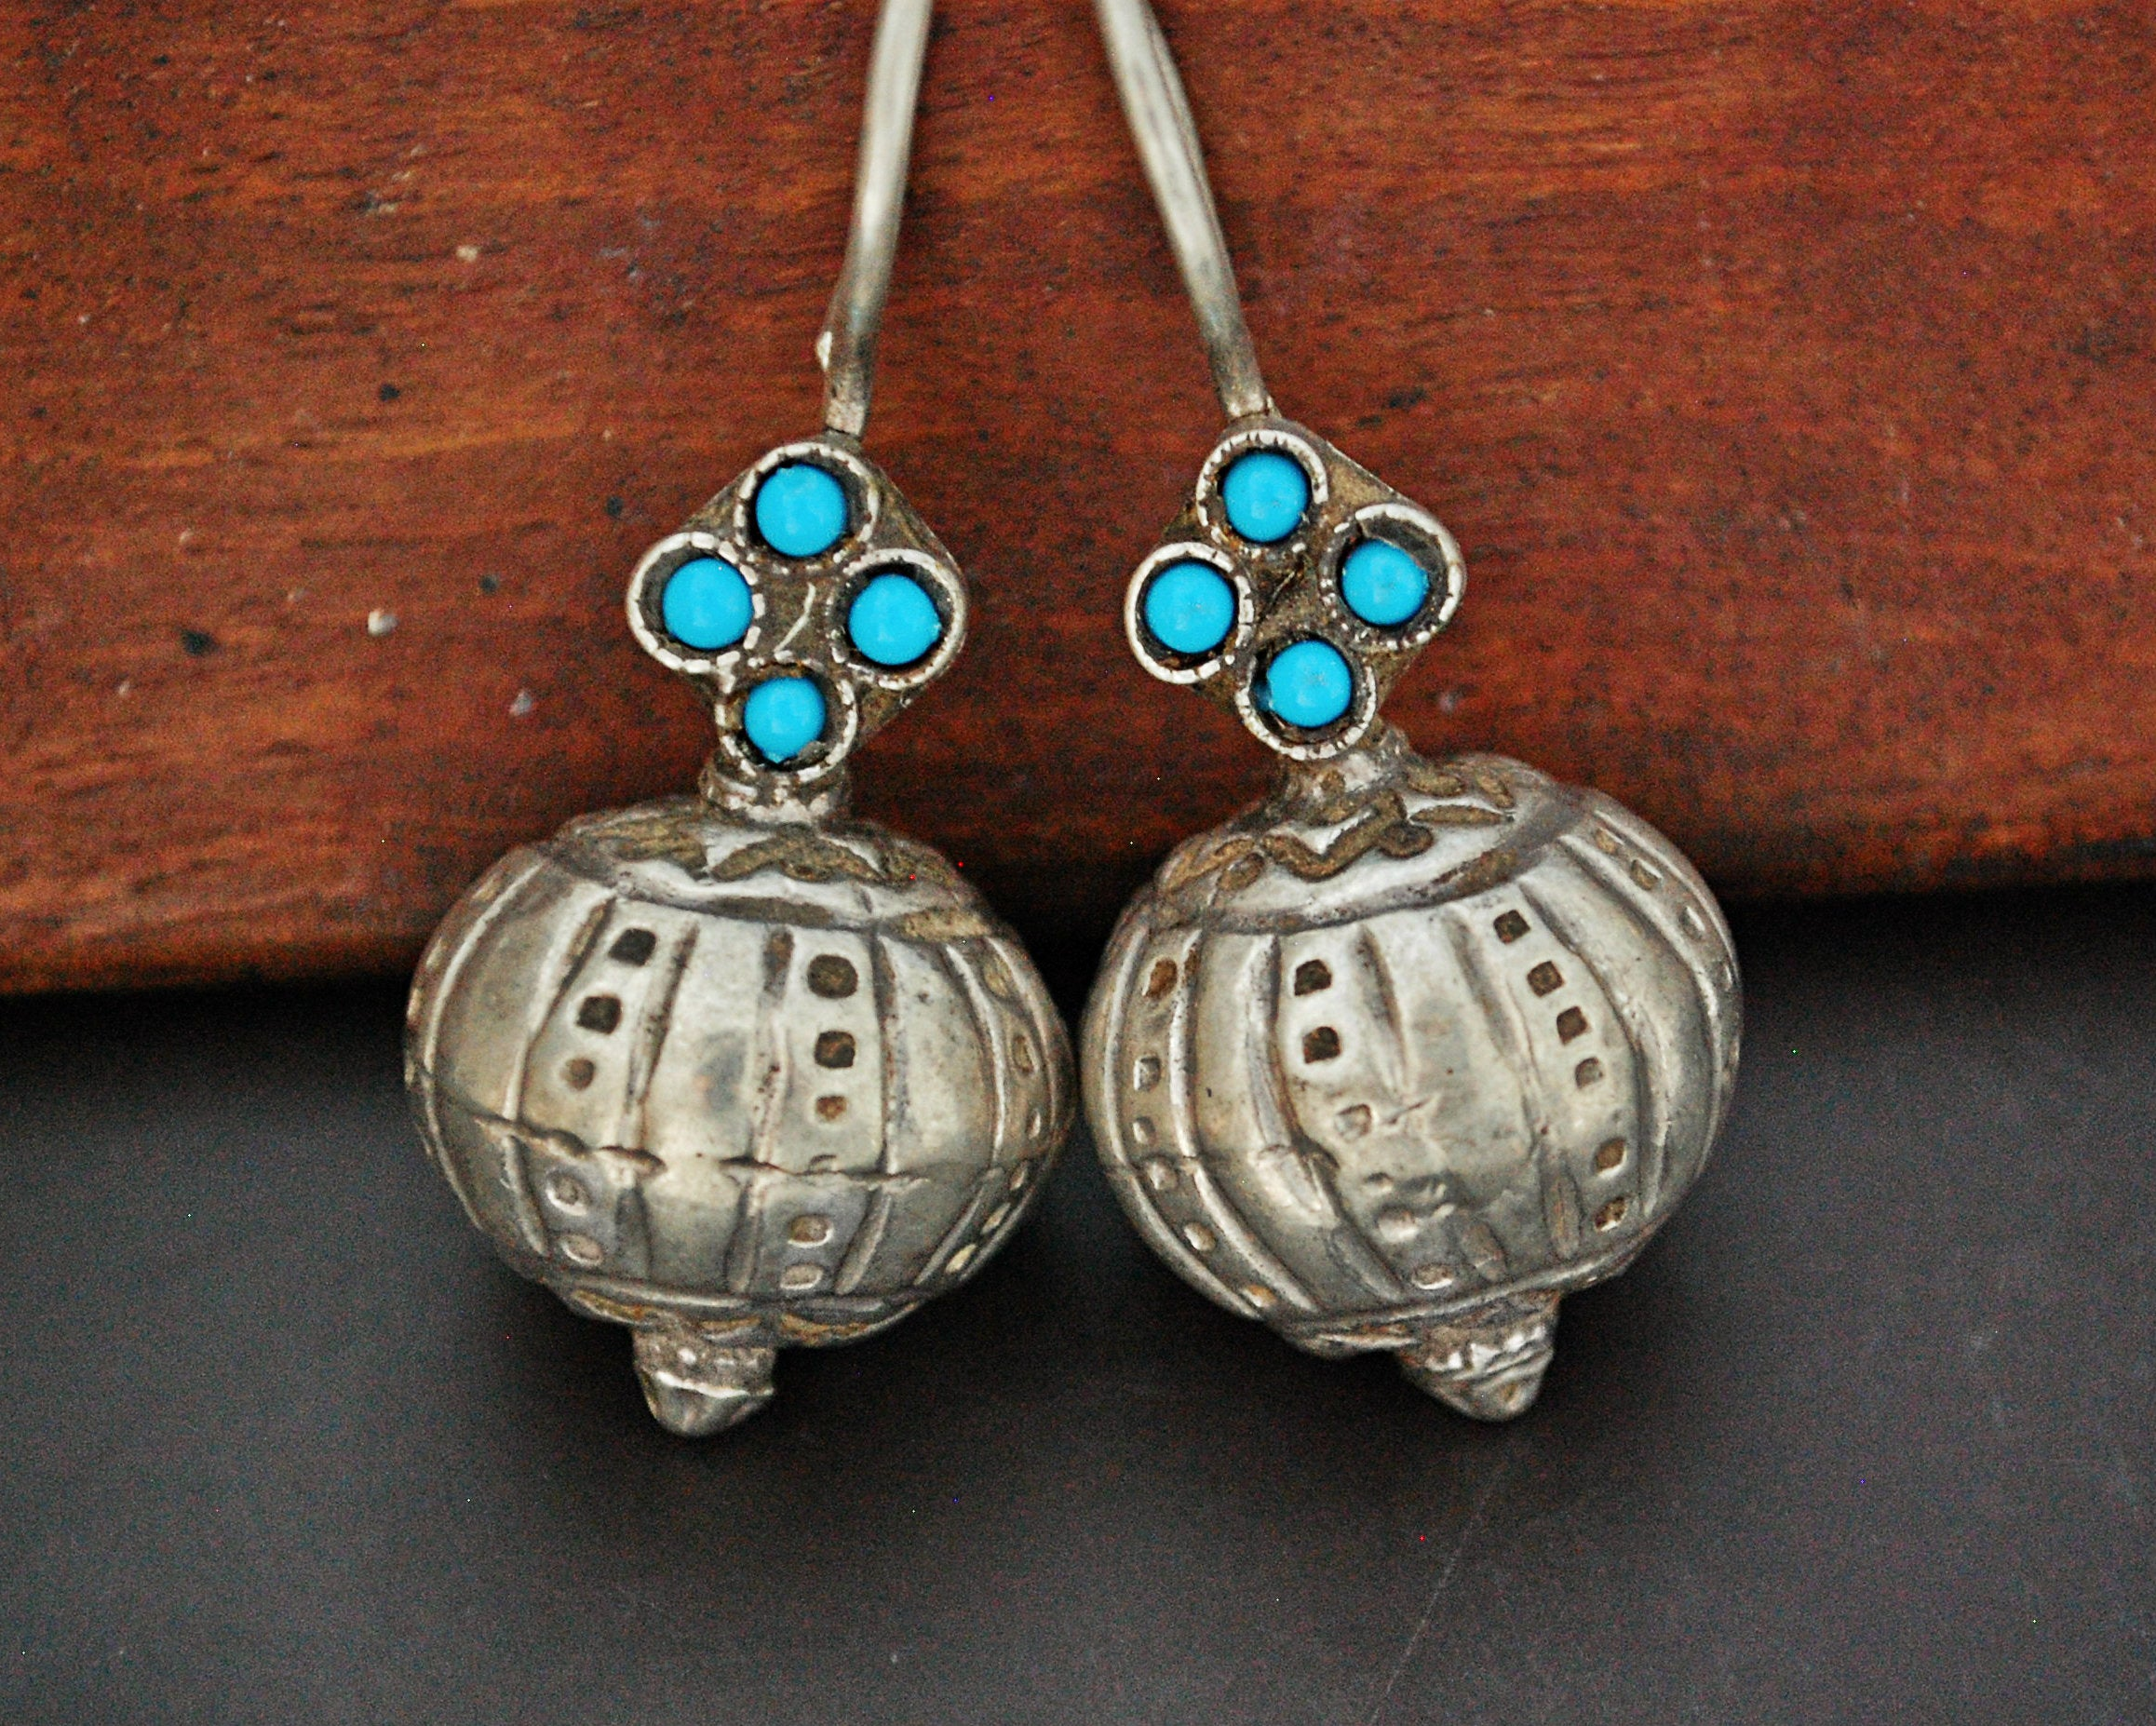 Antique Afghani Earrings with Turquoise